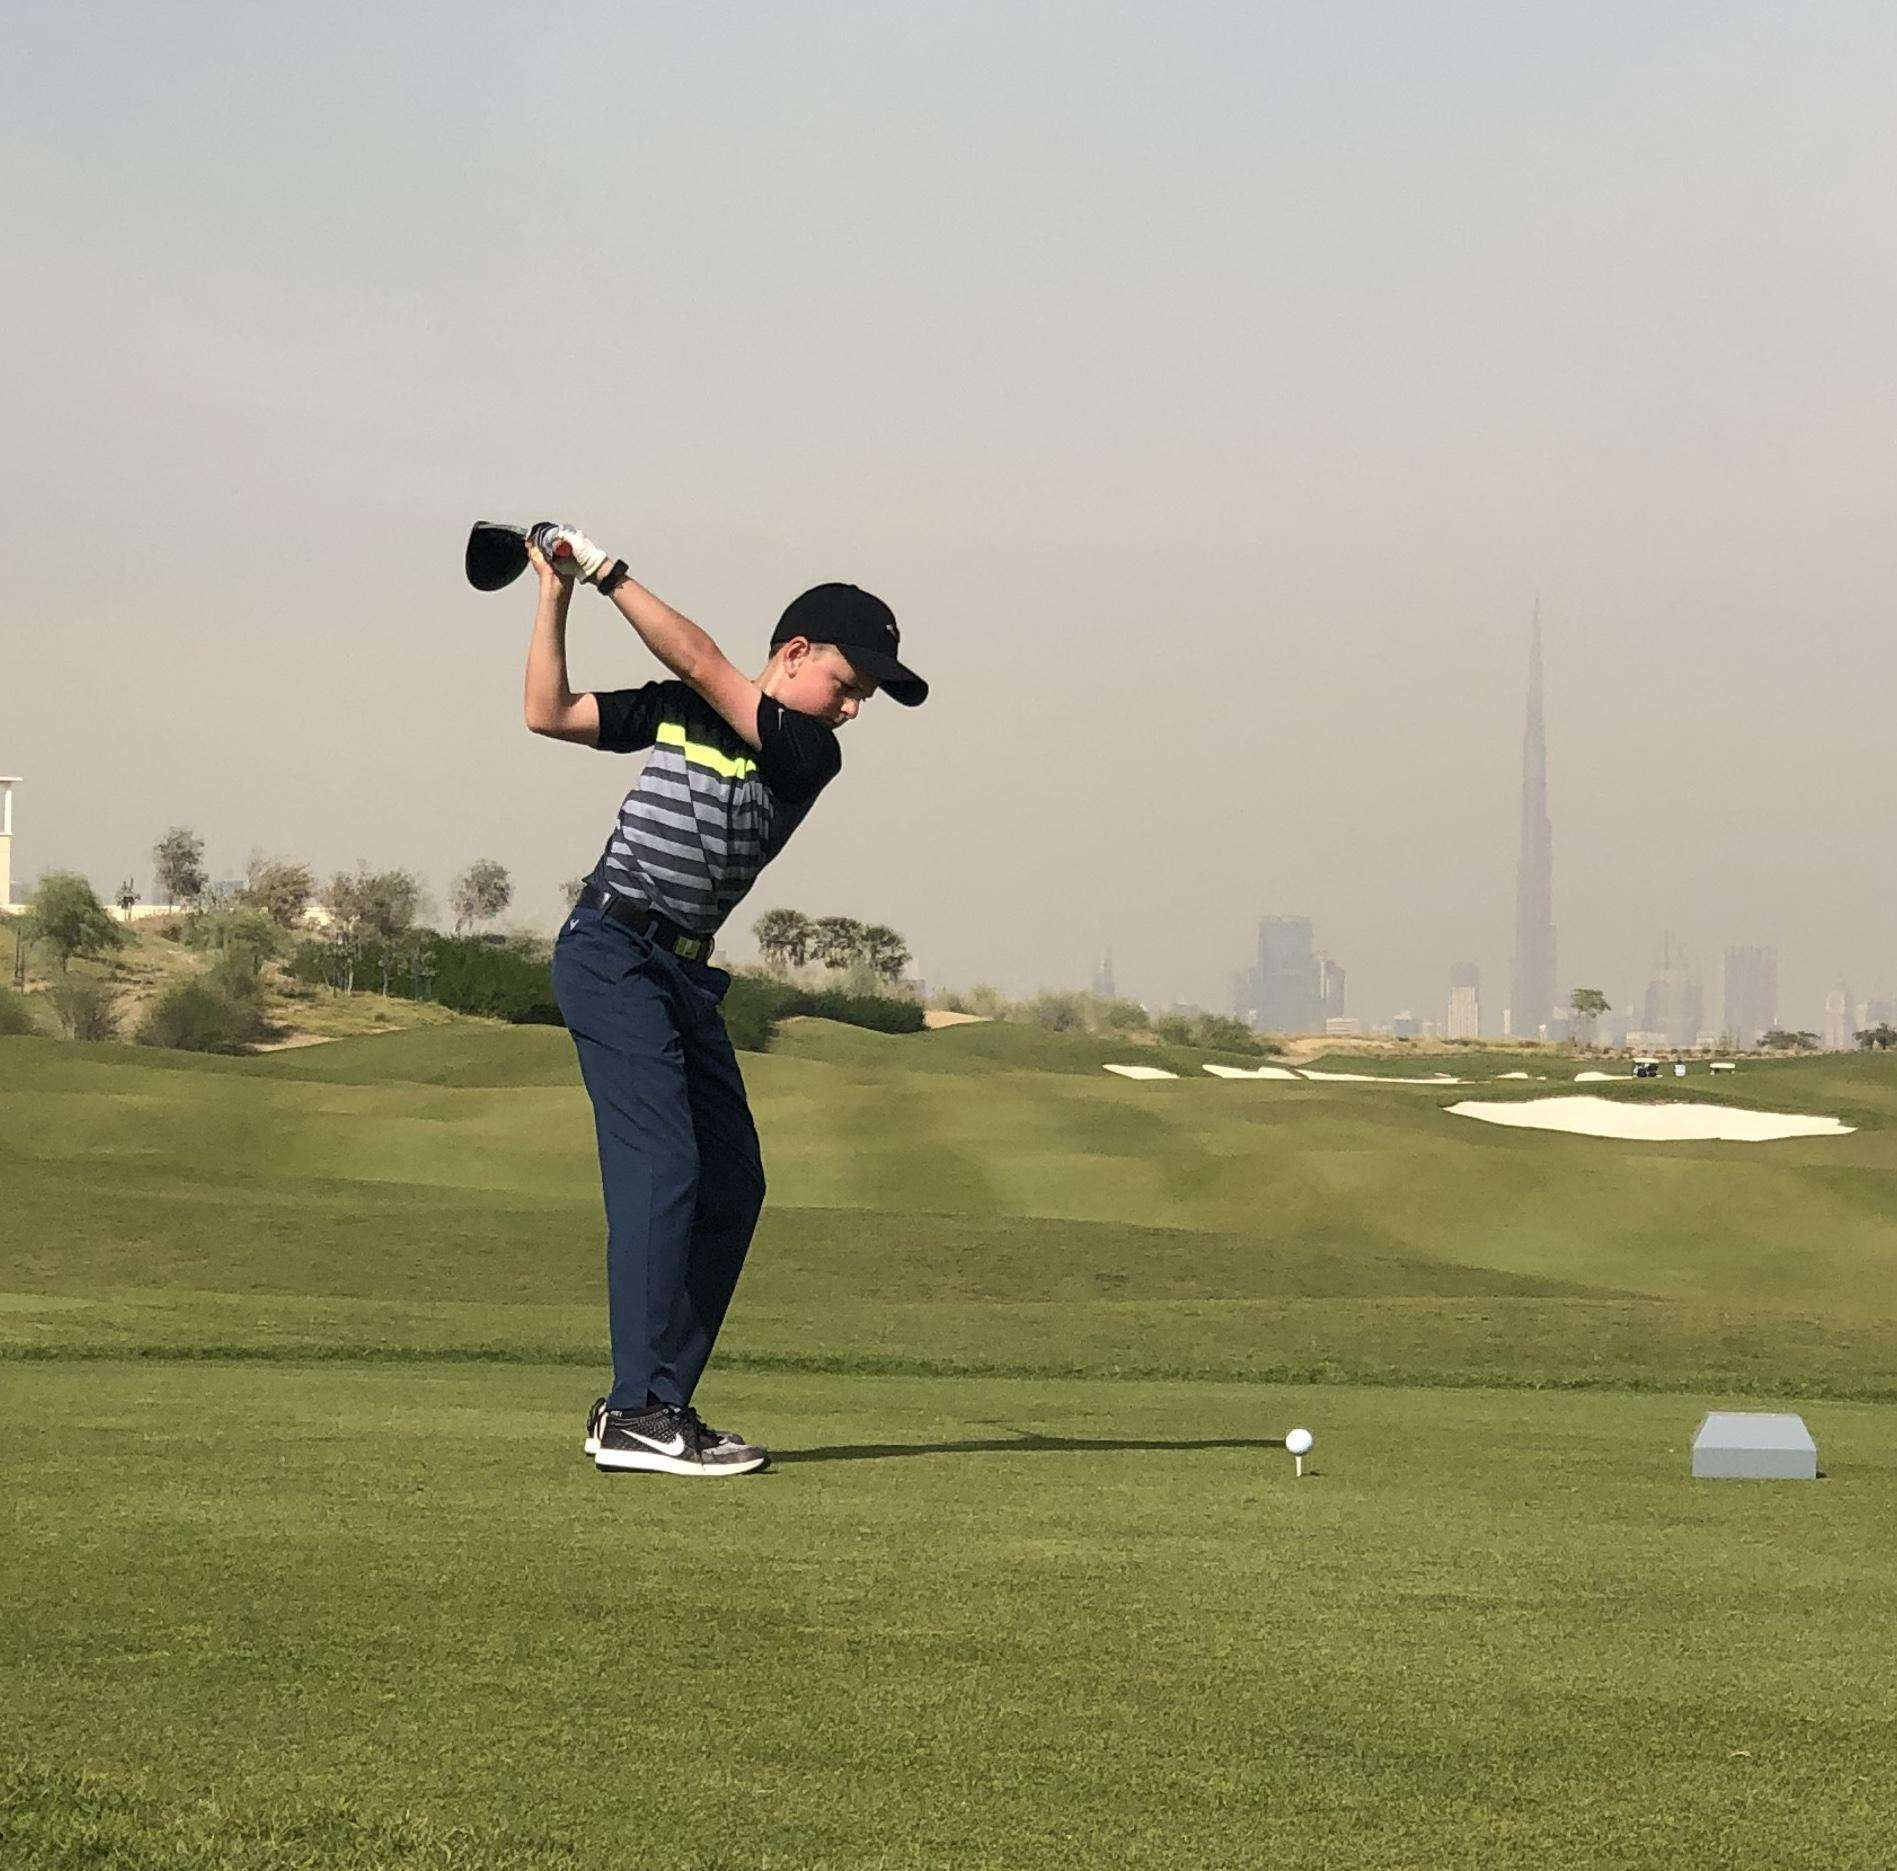 Paul Collington playing on the Junior Masters Tour in Dubai